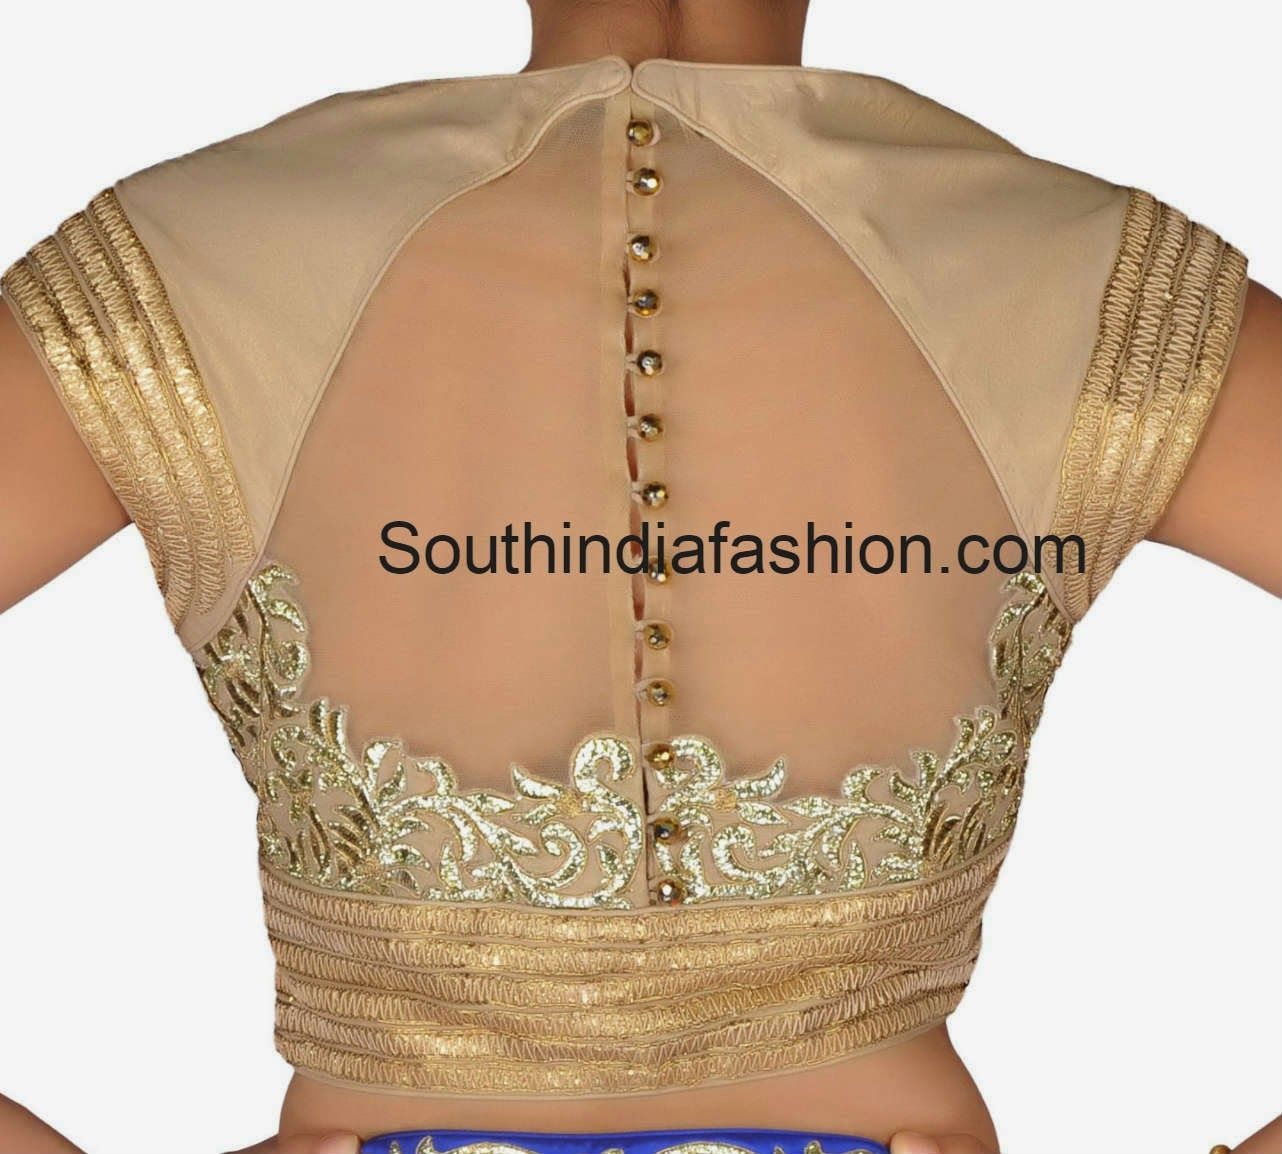 Blouse designs saree blouse back designs blouses neck designs 30 jpg - High Neck Blouse With Net Back Celebrity Sarees Designer Sarees Bridal Sarees Latest Blouse Designs 2014